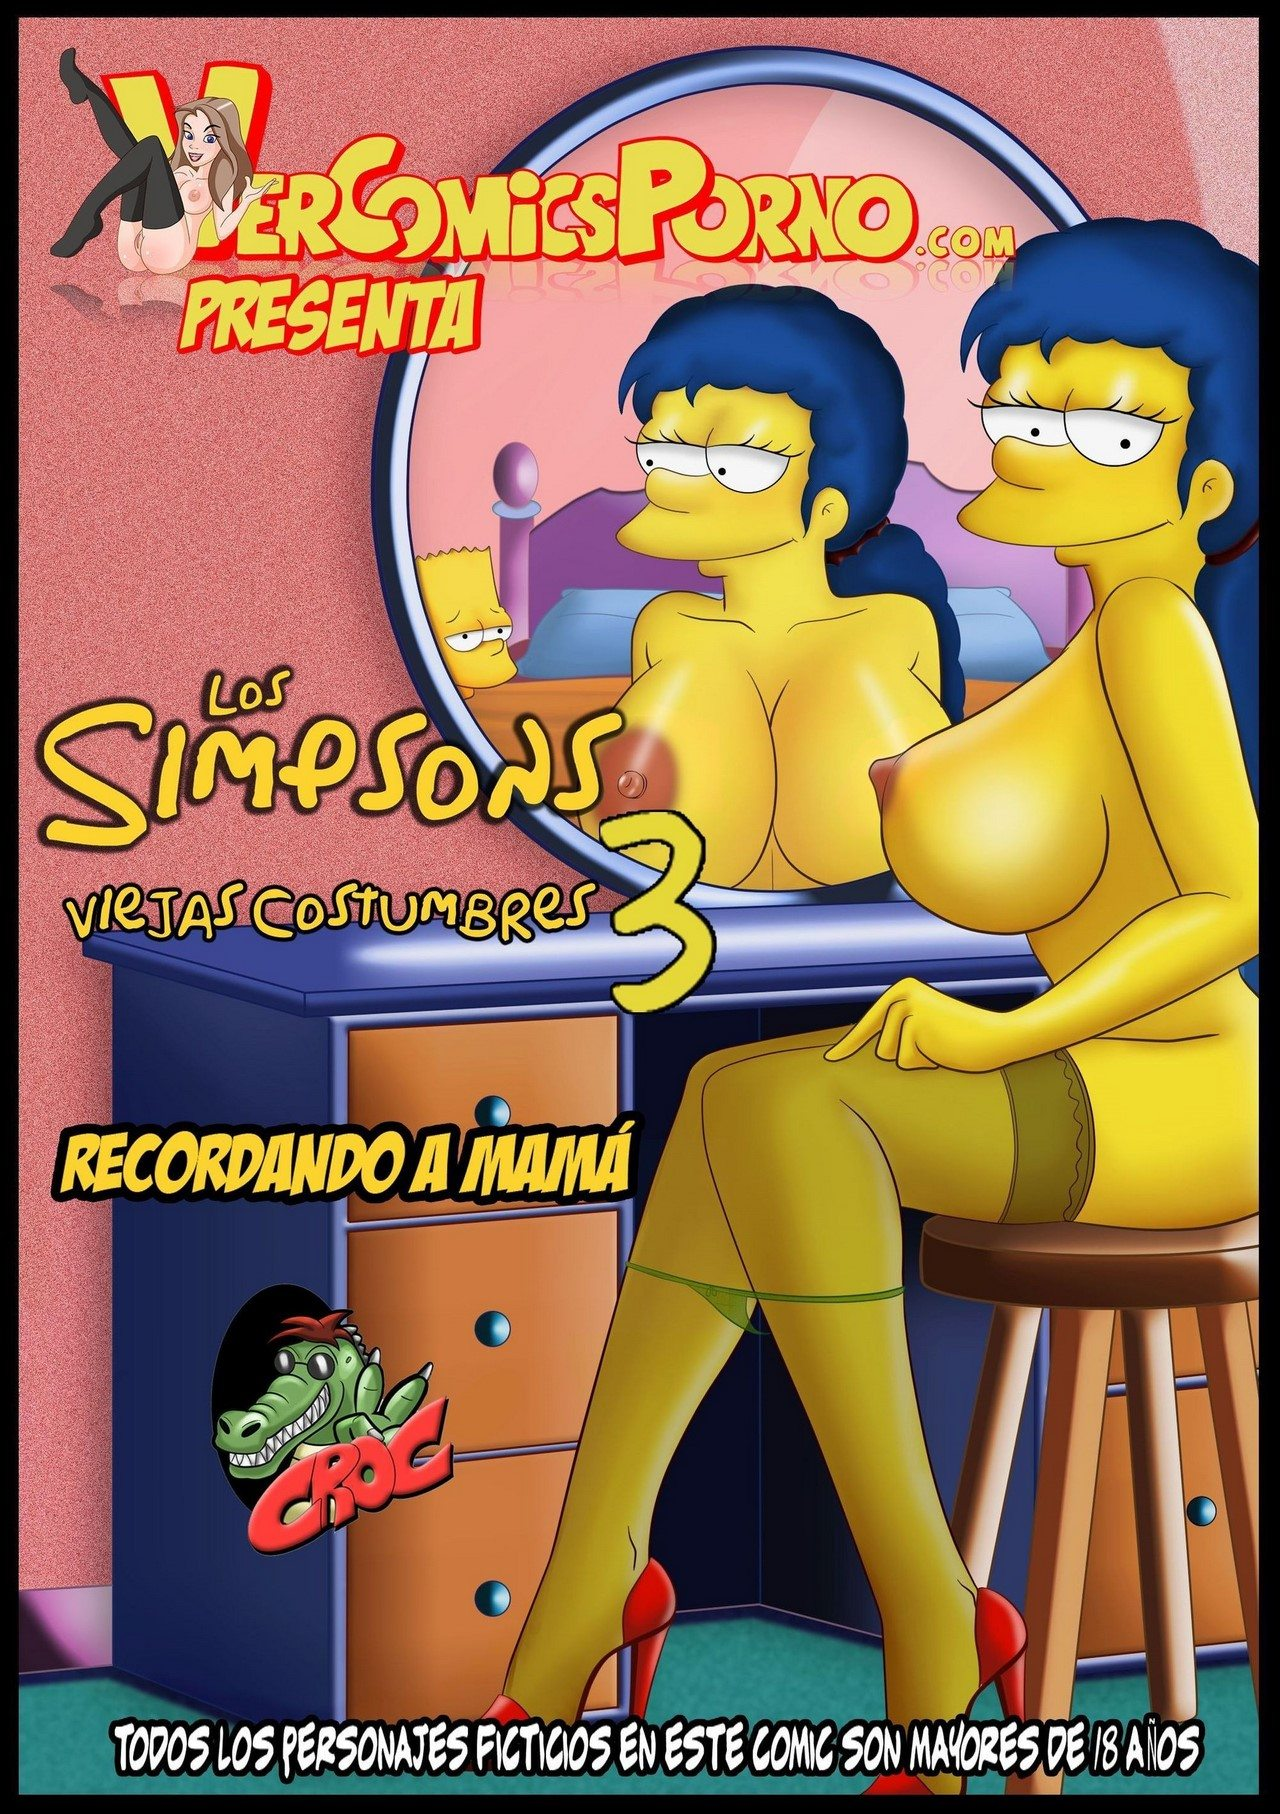 los-simpsons-viejas-costumbres-3-original-exclusivo 1